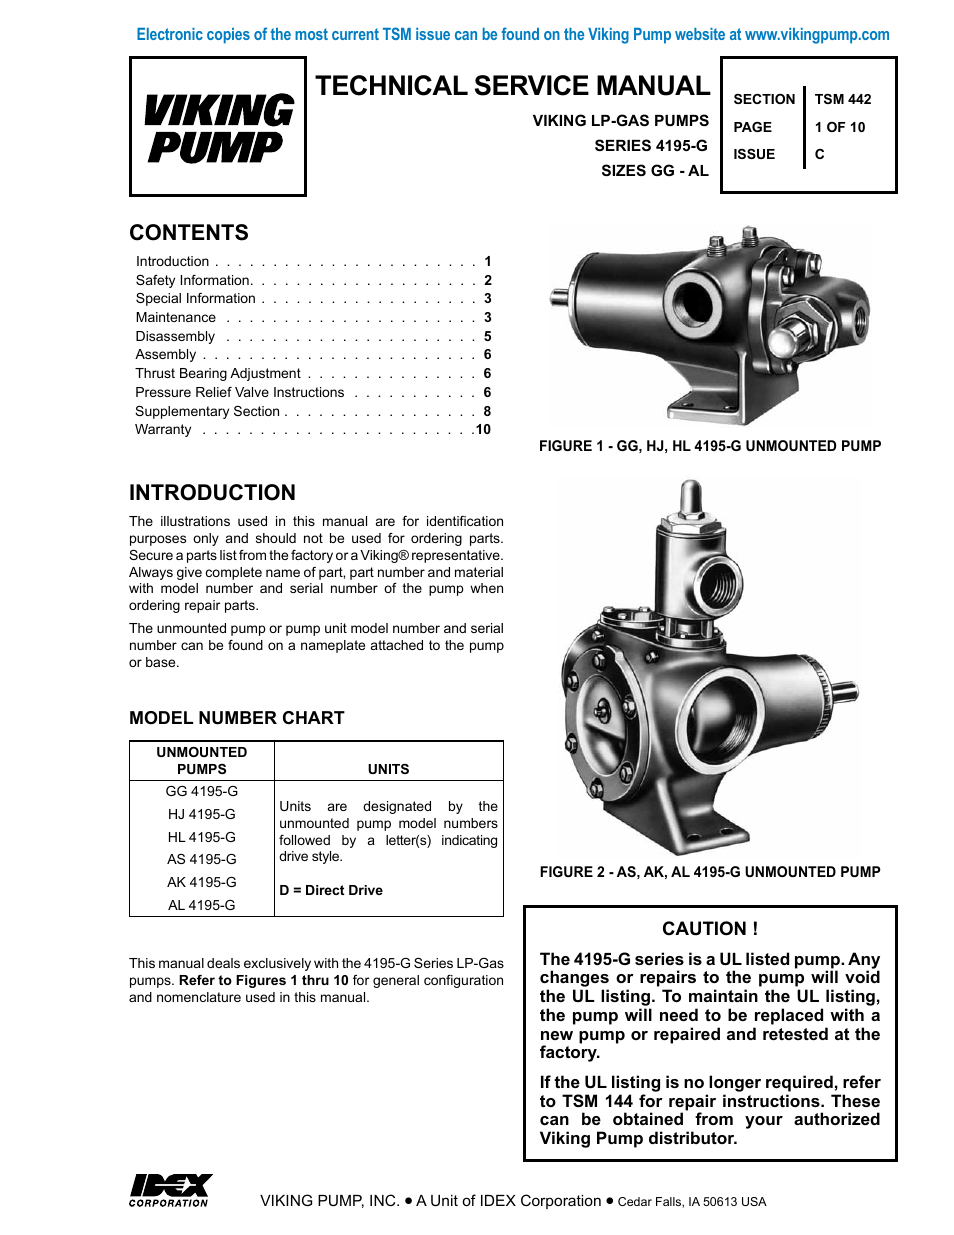 Viking Pump Schematic Detailed Wiring Diagrams Diagram 700 434 Gas Valve Tsm442 Gg Al 4195 G Lp User Manual 10 Pages Centrifugal Animation